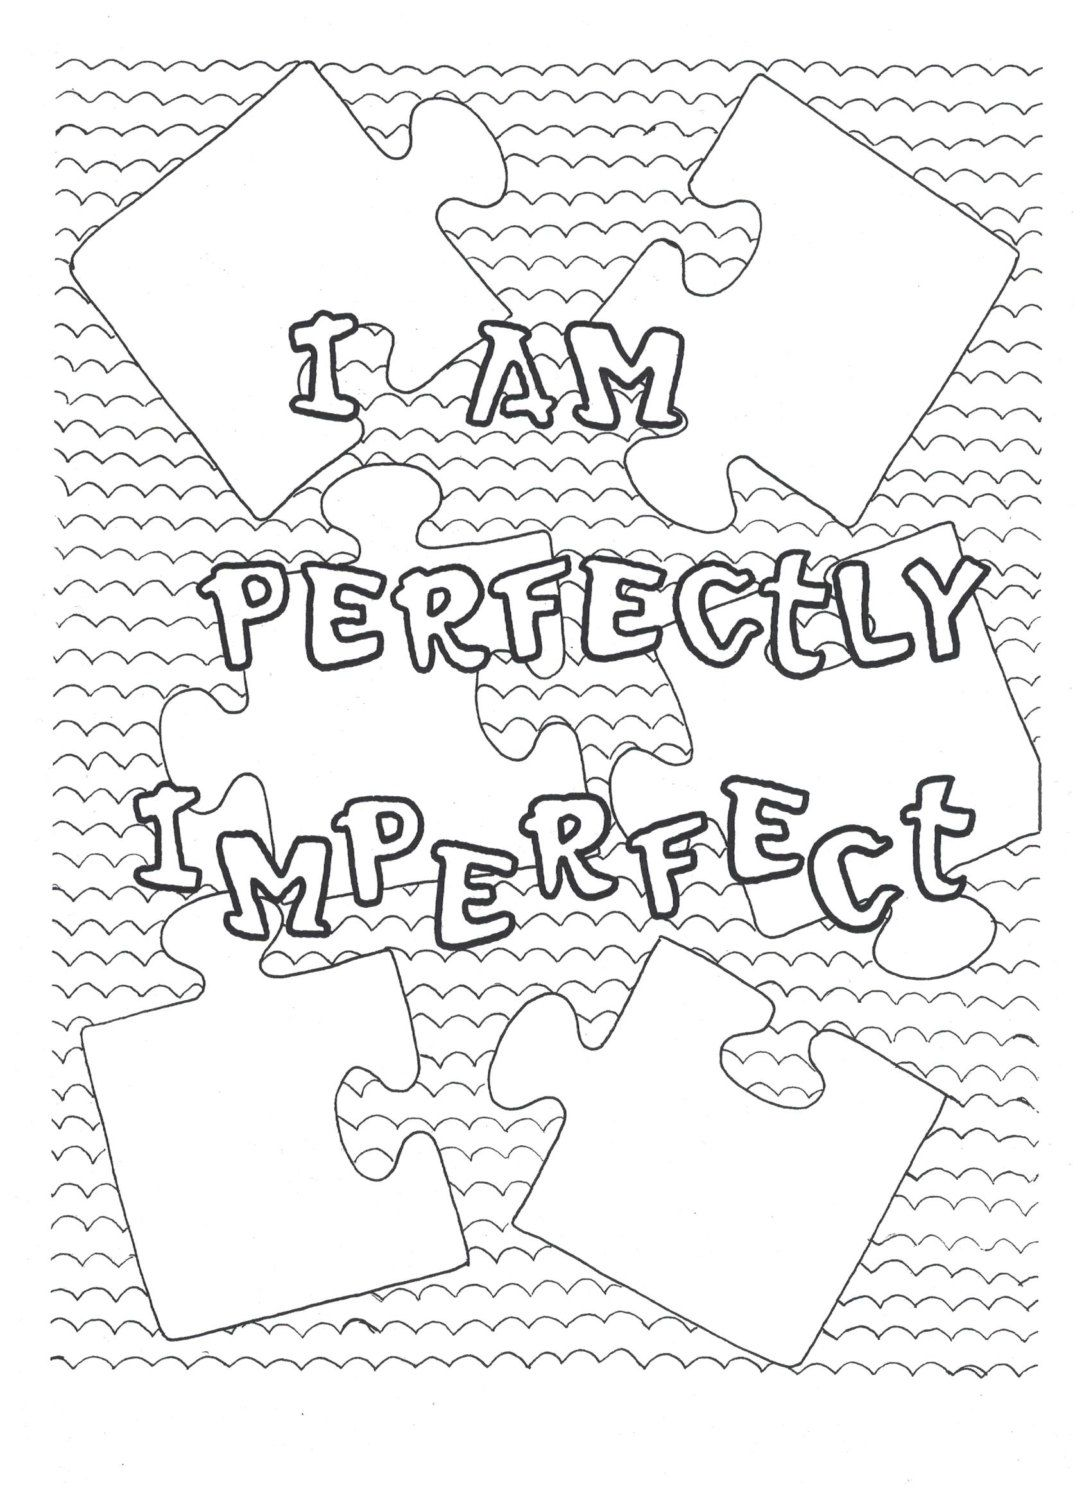 I Am Perfectly Imperfect Coloring Page By Stacy06designs On Etsy